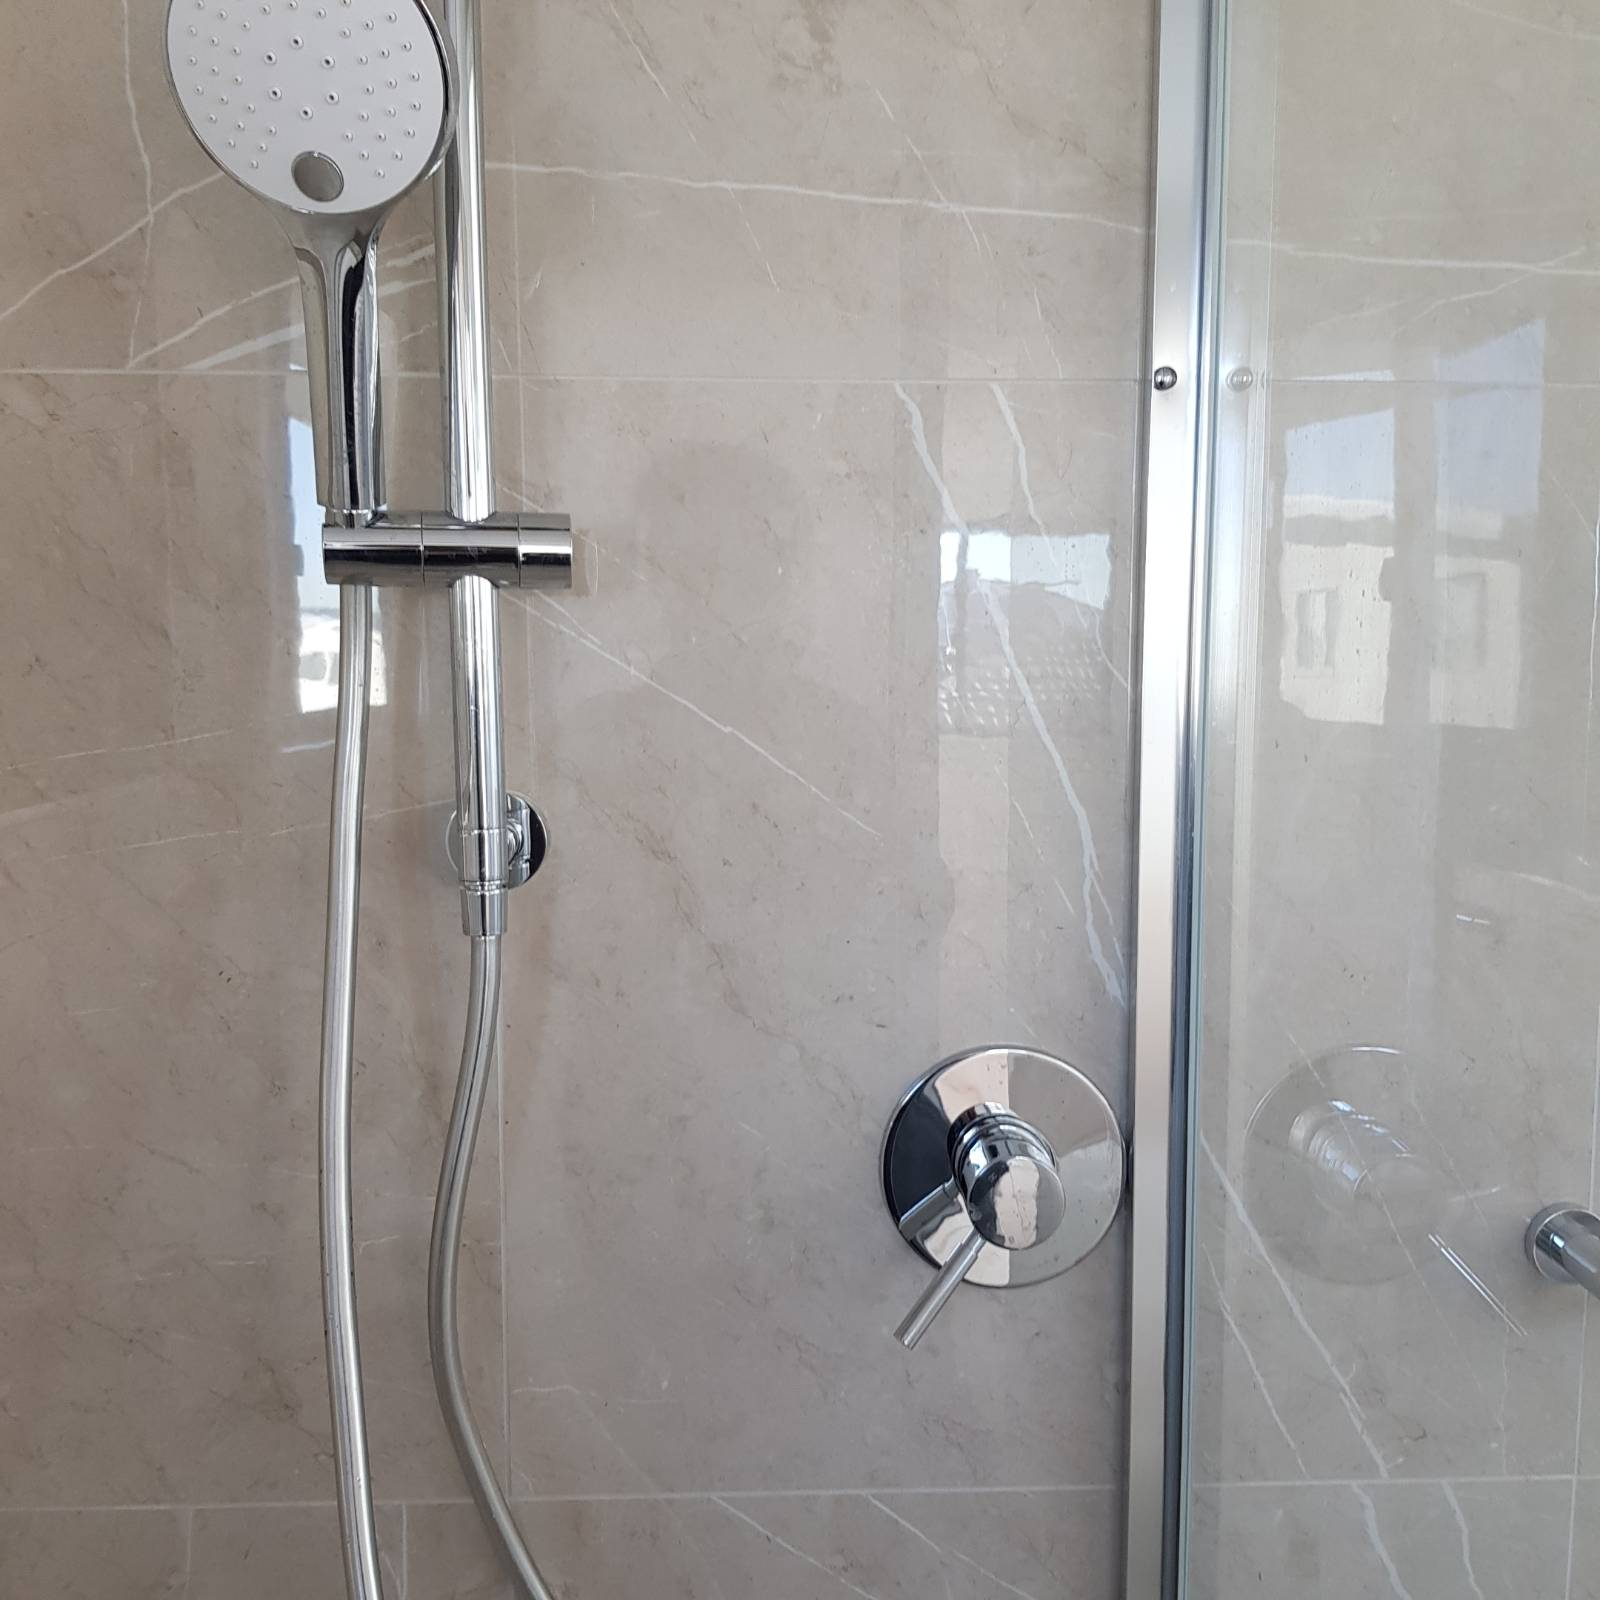 Shower mixer tap touching shower frame...thoughts?